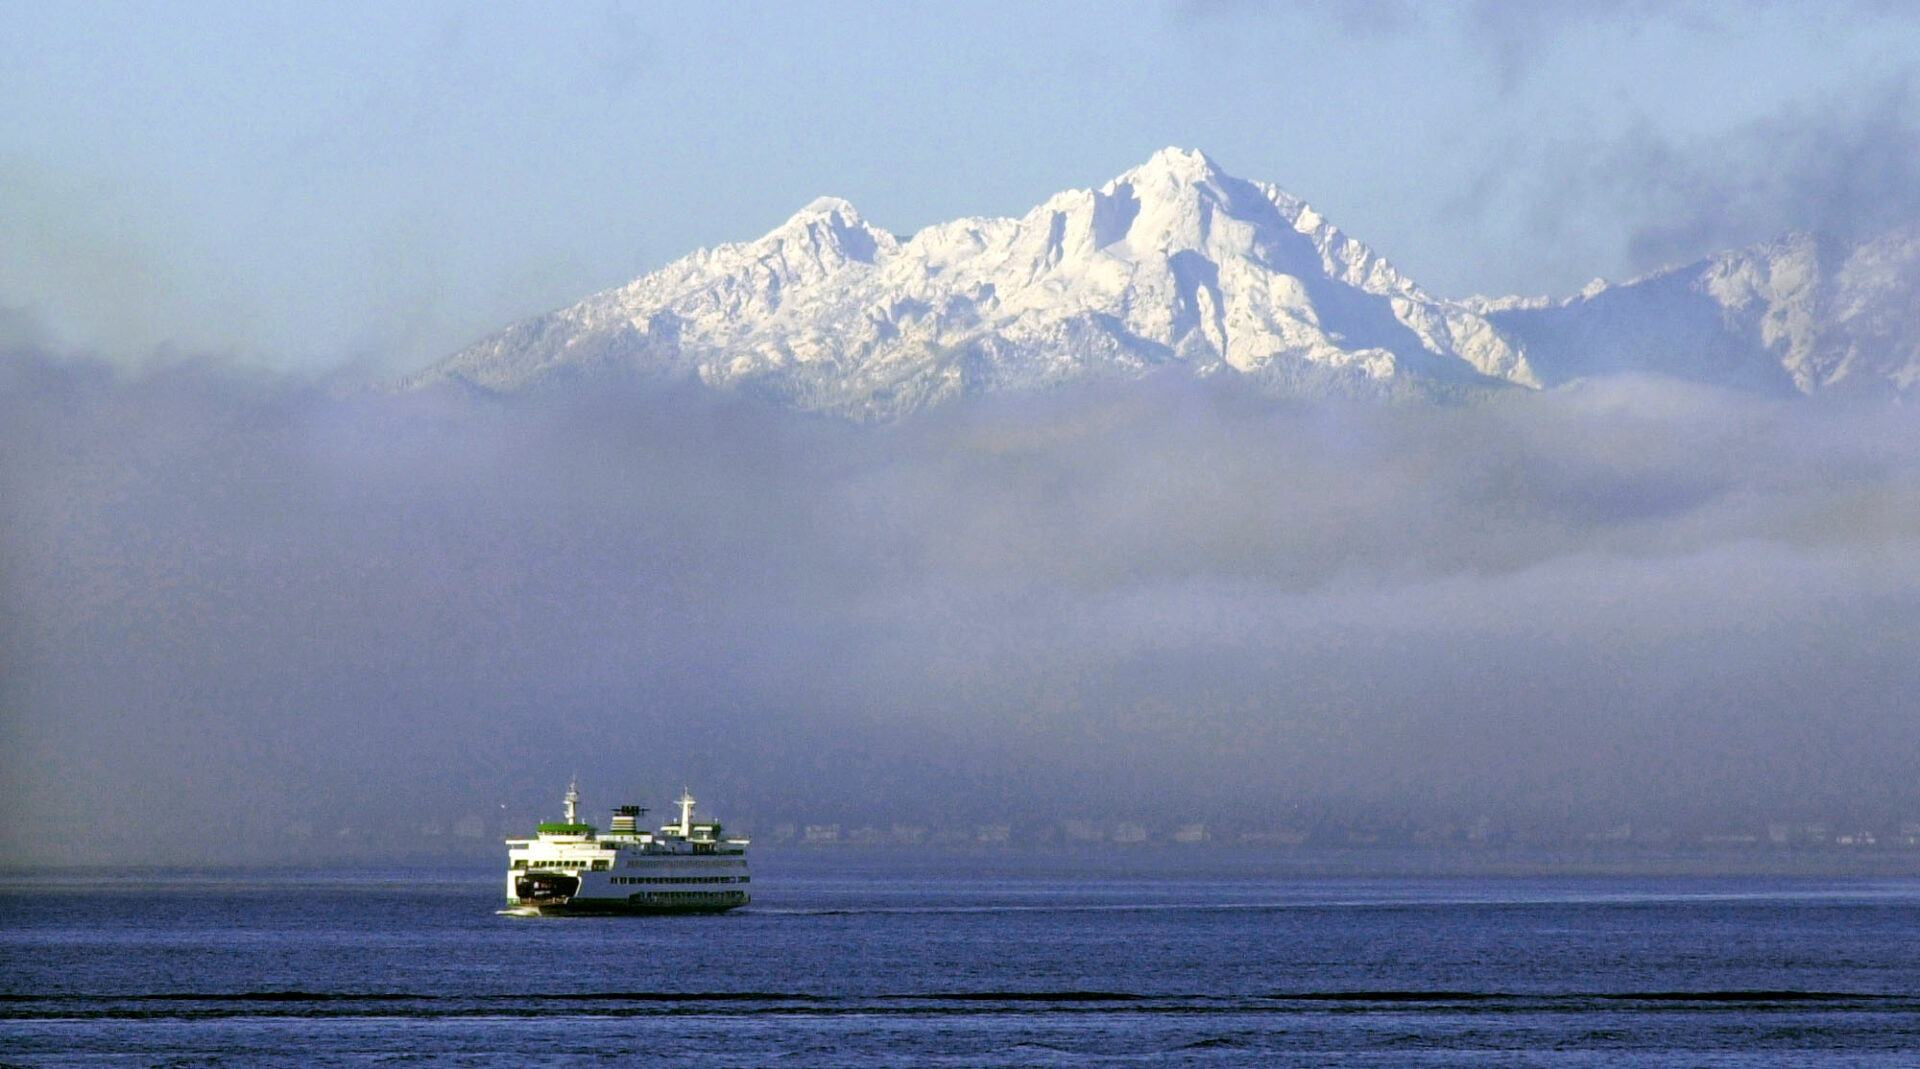 Mapping capacity and flows of ecosystem services in Puget Sound